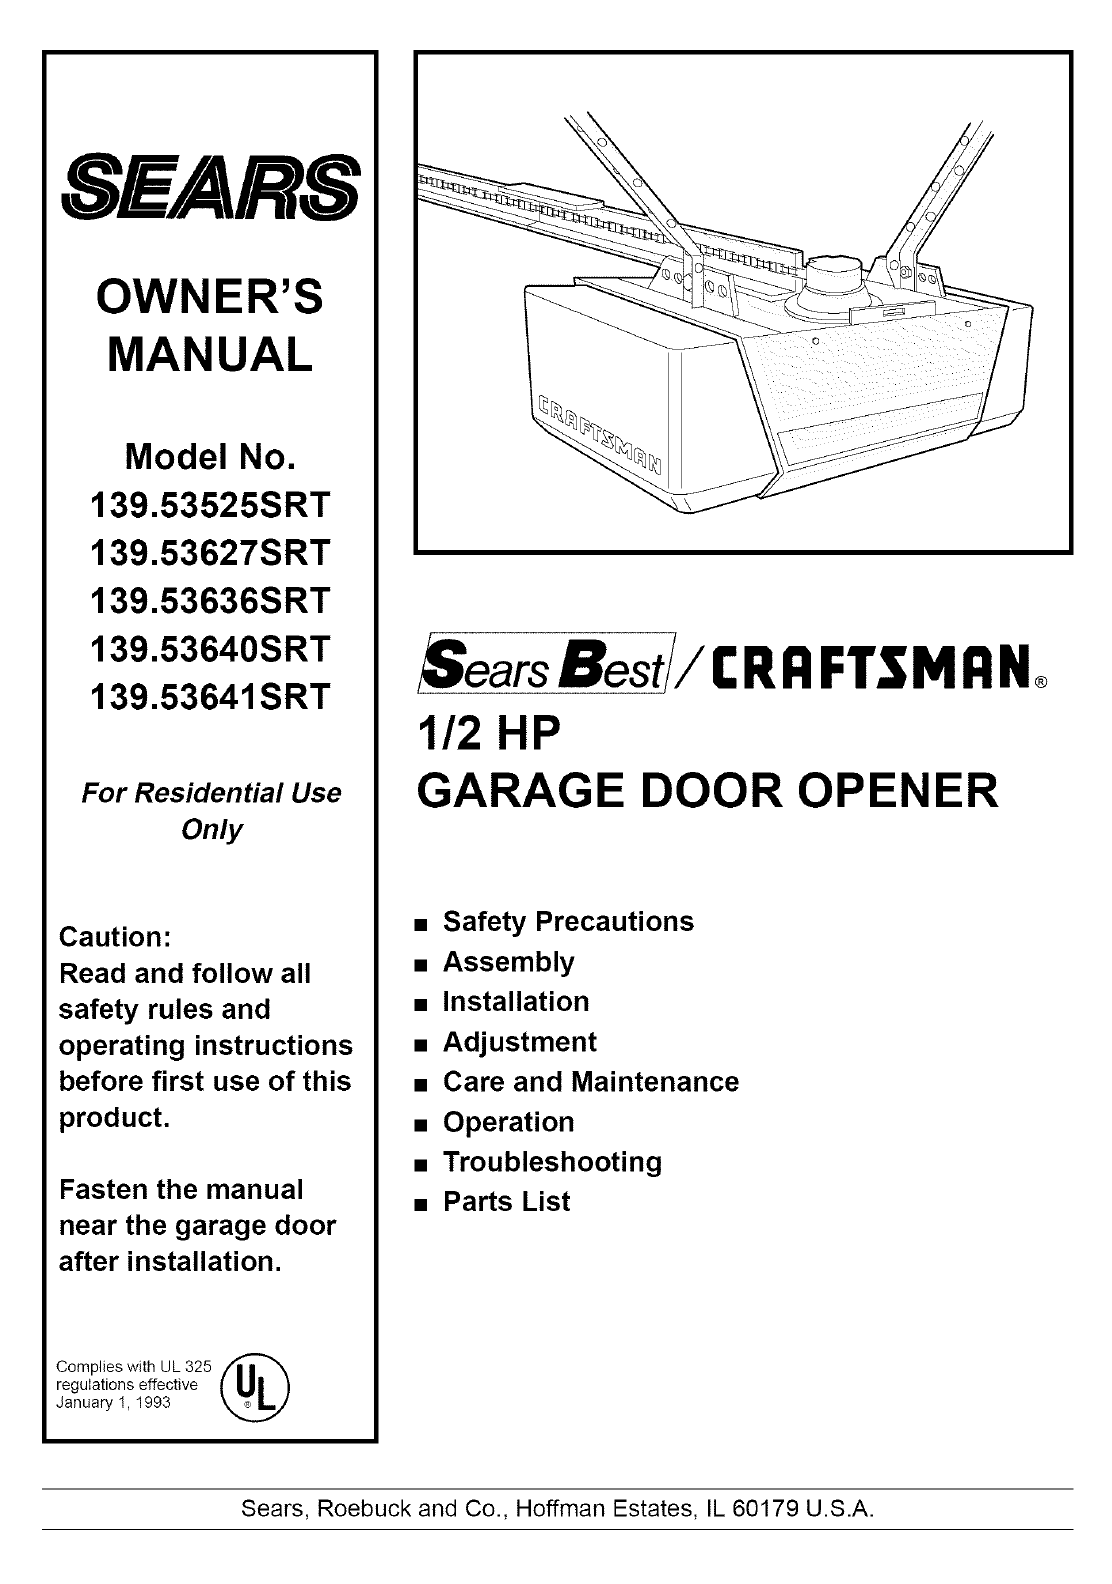 Sears Garage Door Opener 139 53636srt User Guide